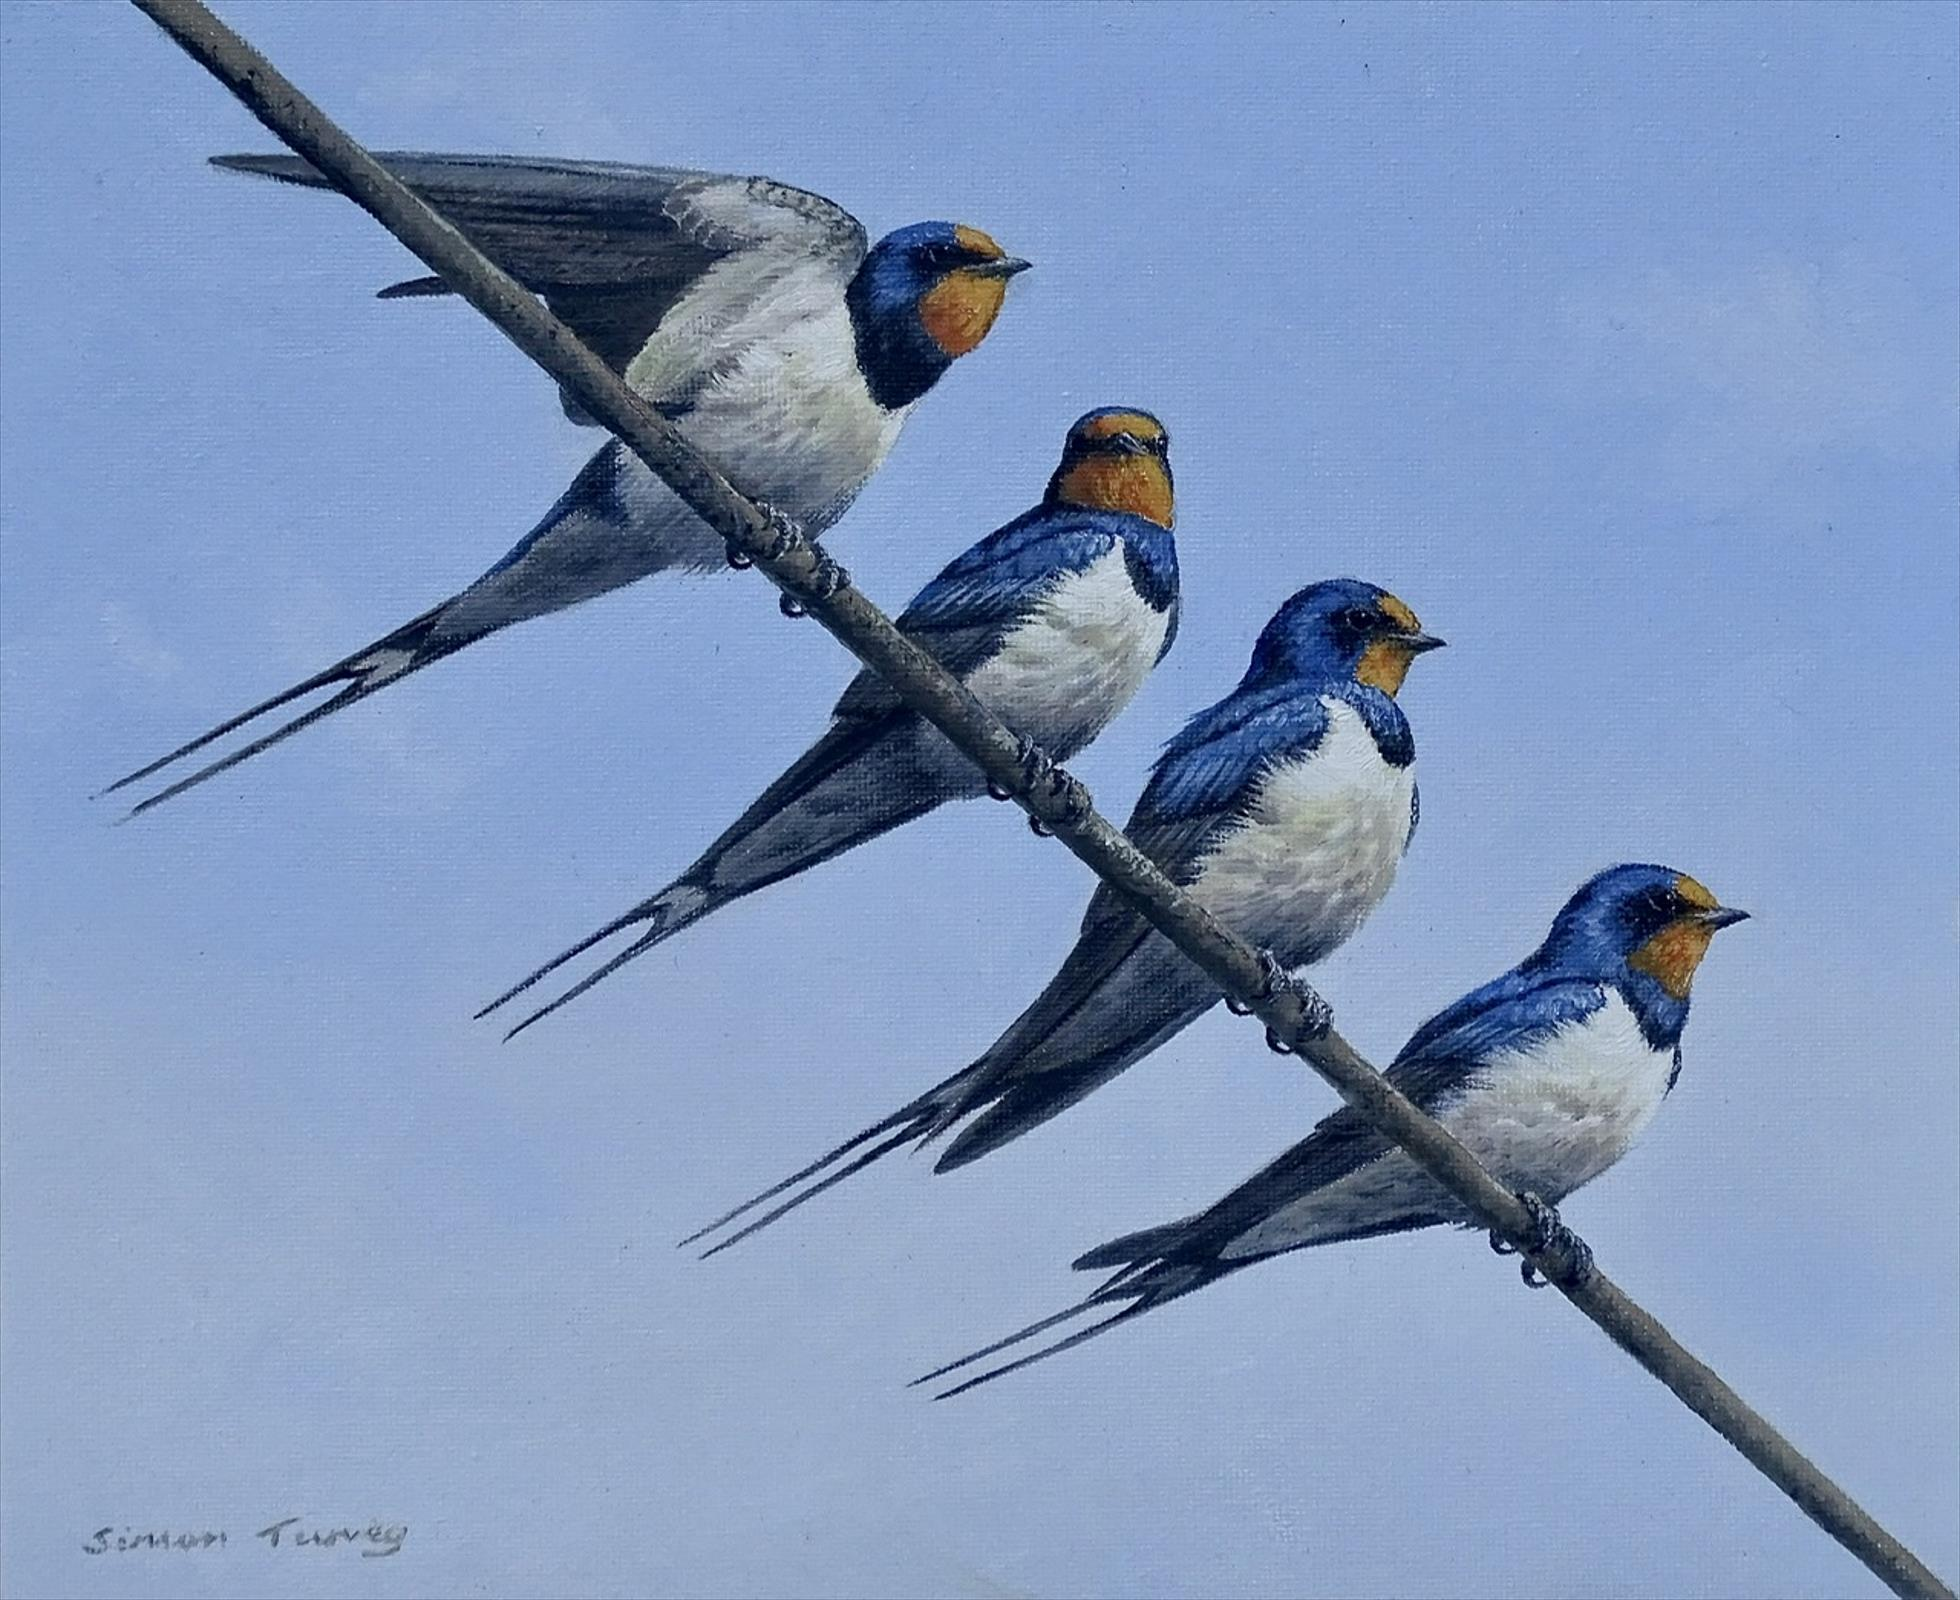 Swallows by Simon Turvey RSPB Award Winner 2020